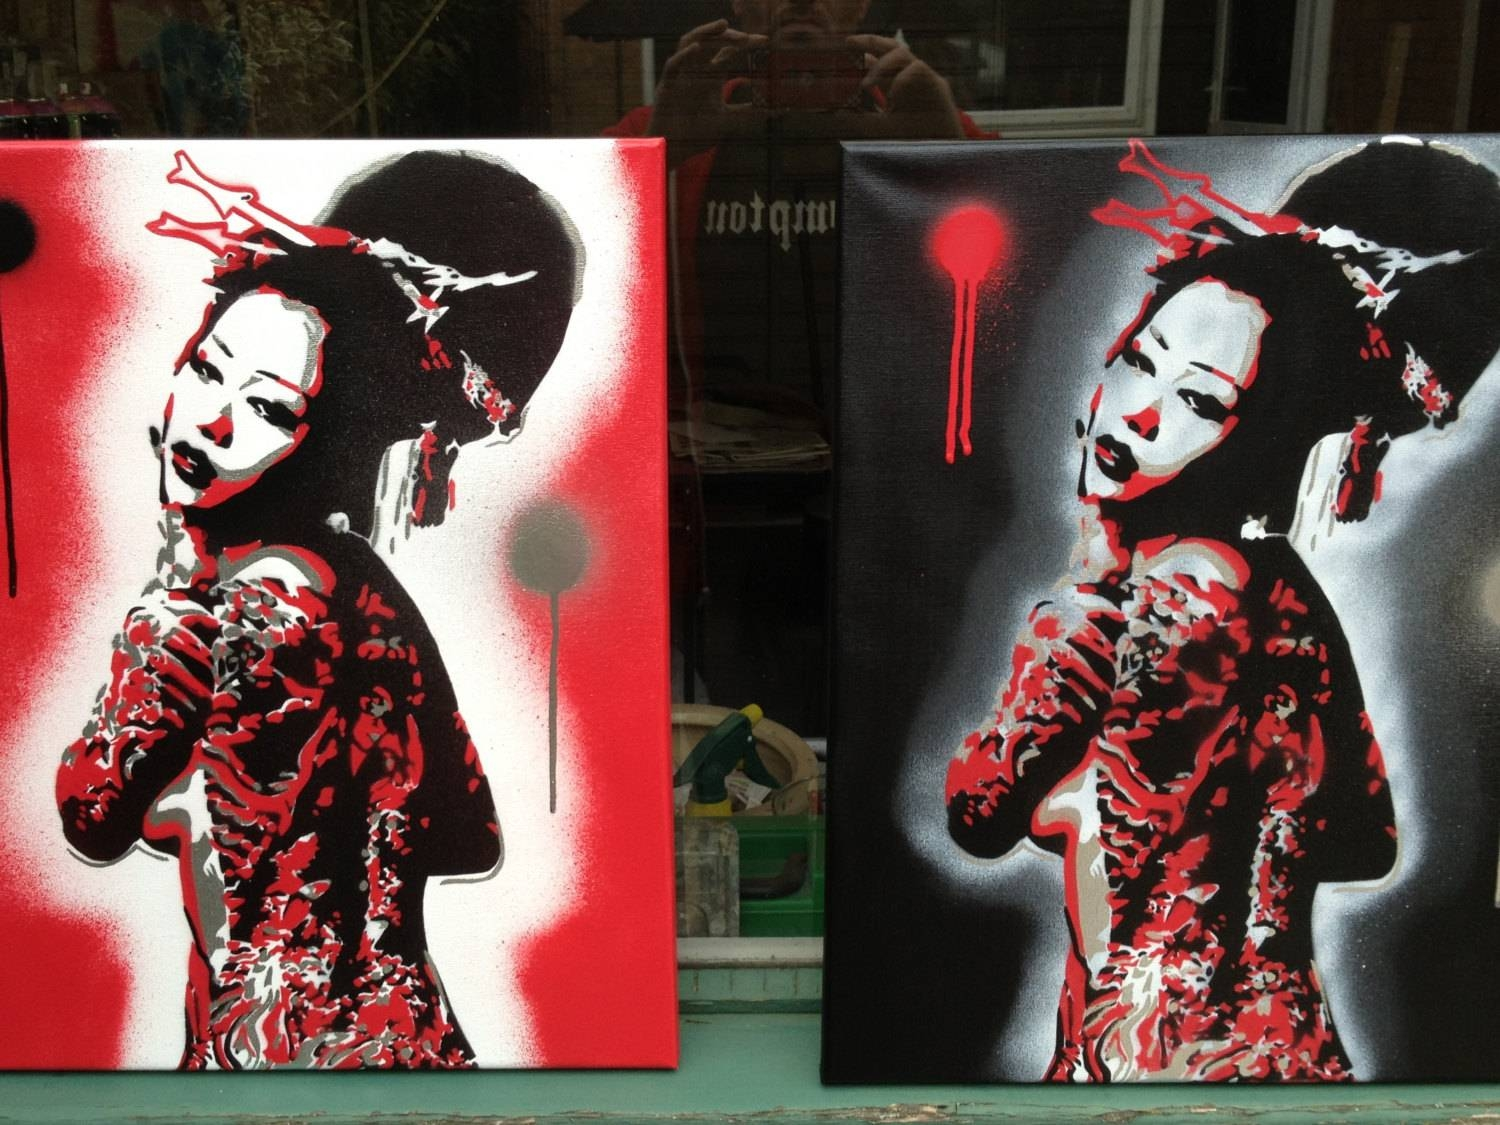 Geisha Painting Nude Tattooed Girl Stencil Art Spray Paints Intended For 2018 Geisha Canvas Wall Art (Gallery 20 of 20)